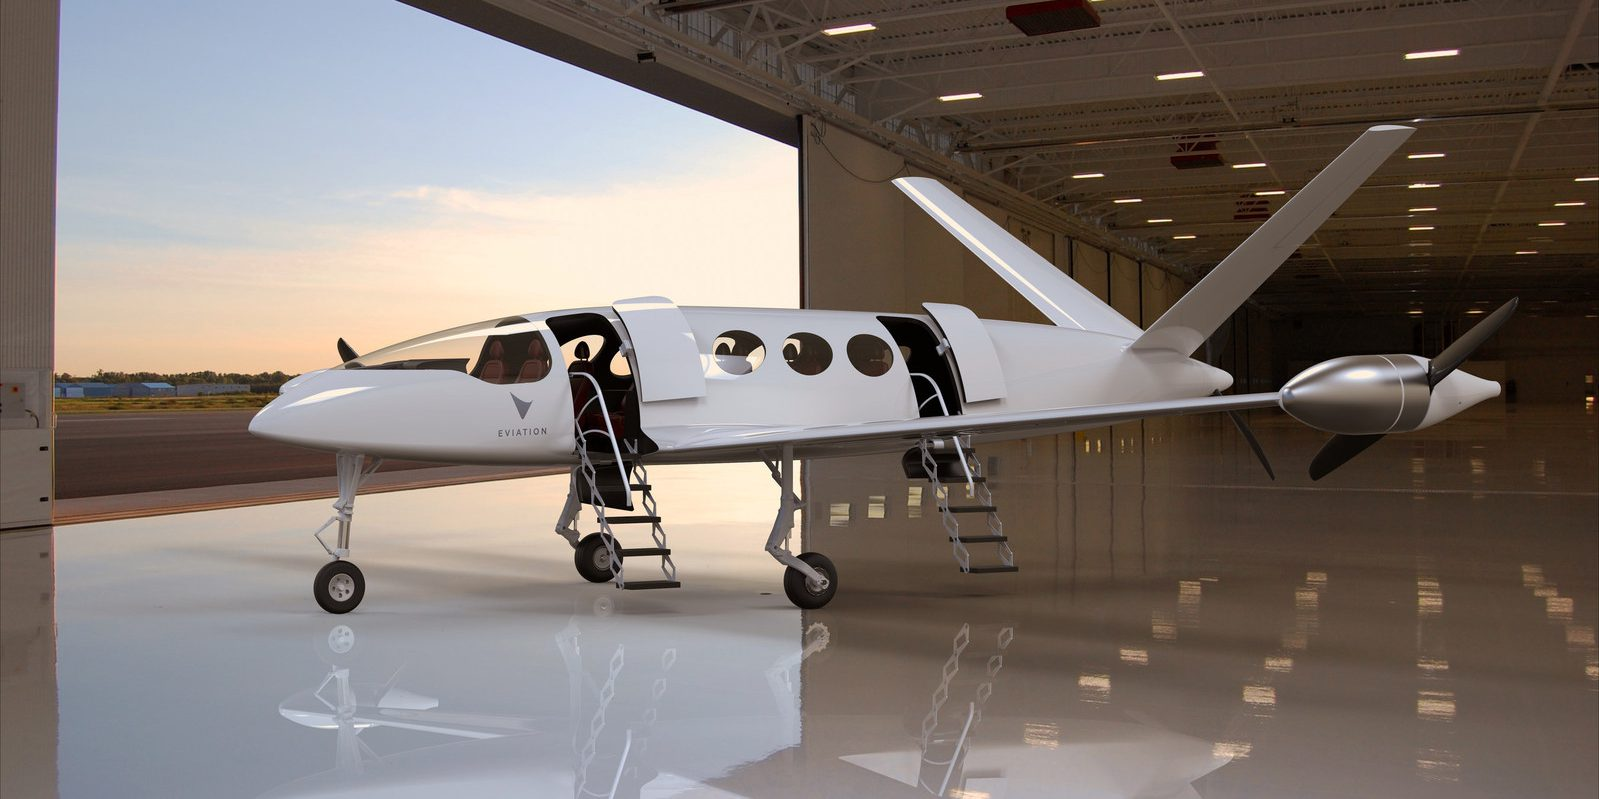 Tesla Electric Airplane? Elon Musk sees electric aircraft in 5 years